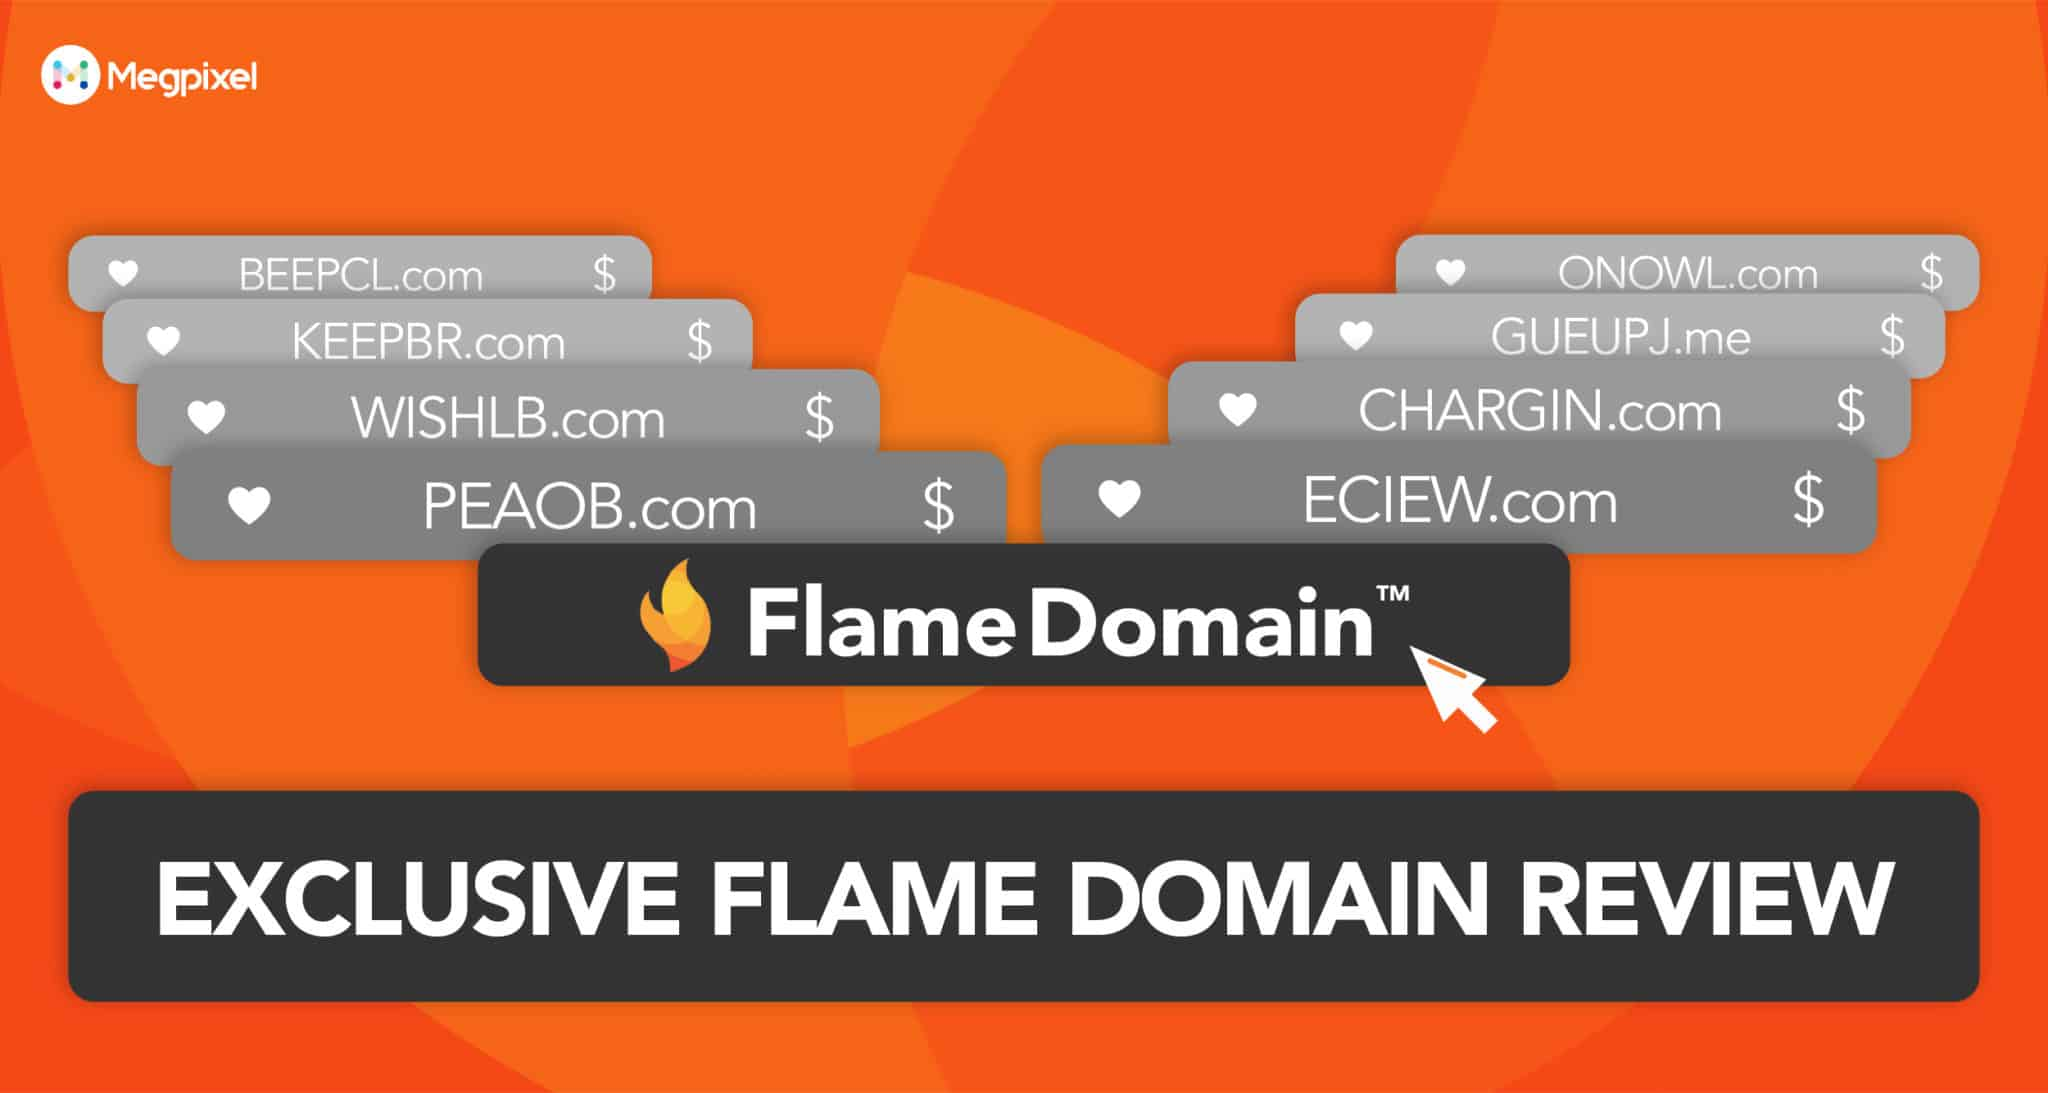 [Exclusive] Flamedomain Review | World's No.1 Best Domain Research Tool